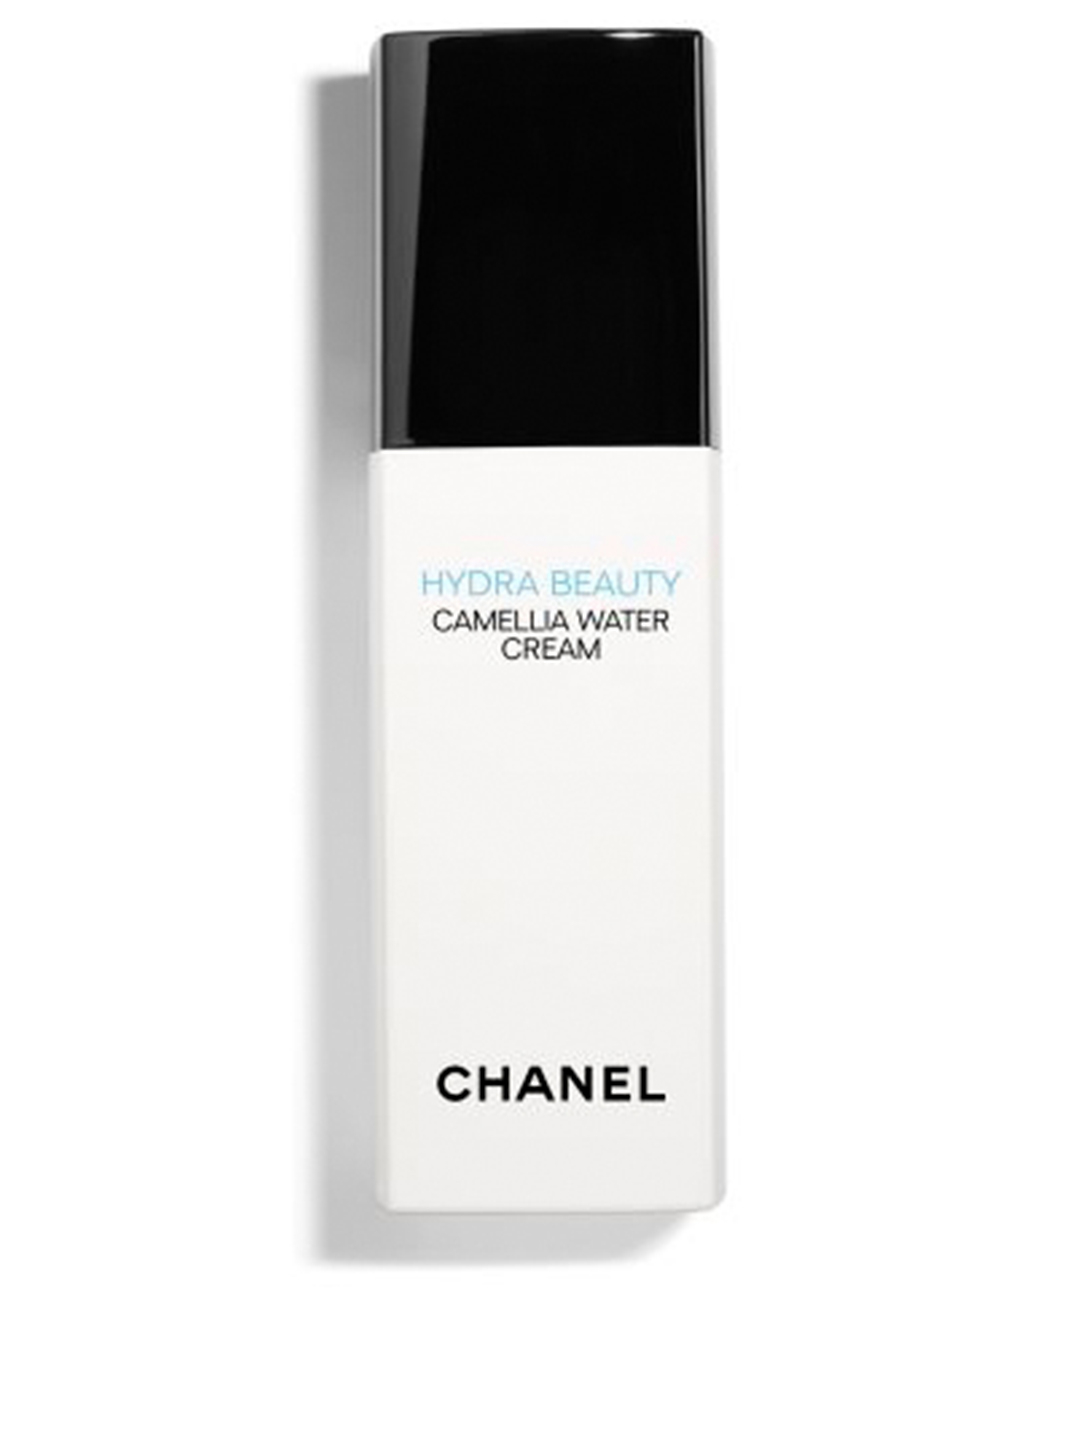 CHANEL Hydra Beauty Camellia Water Cream CHANEL